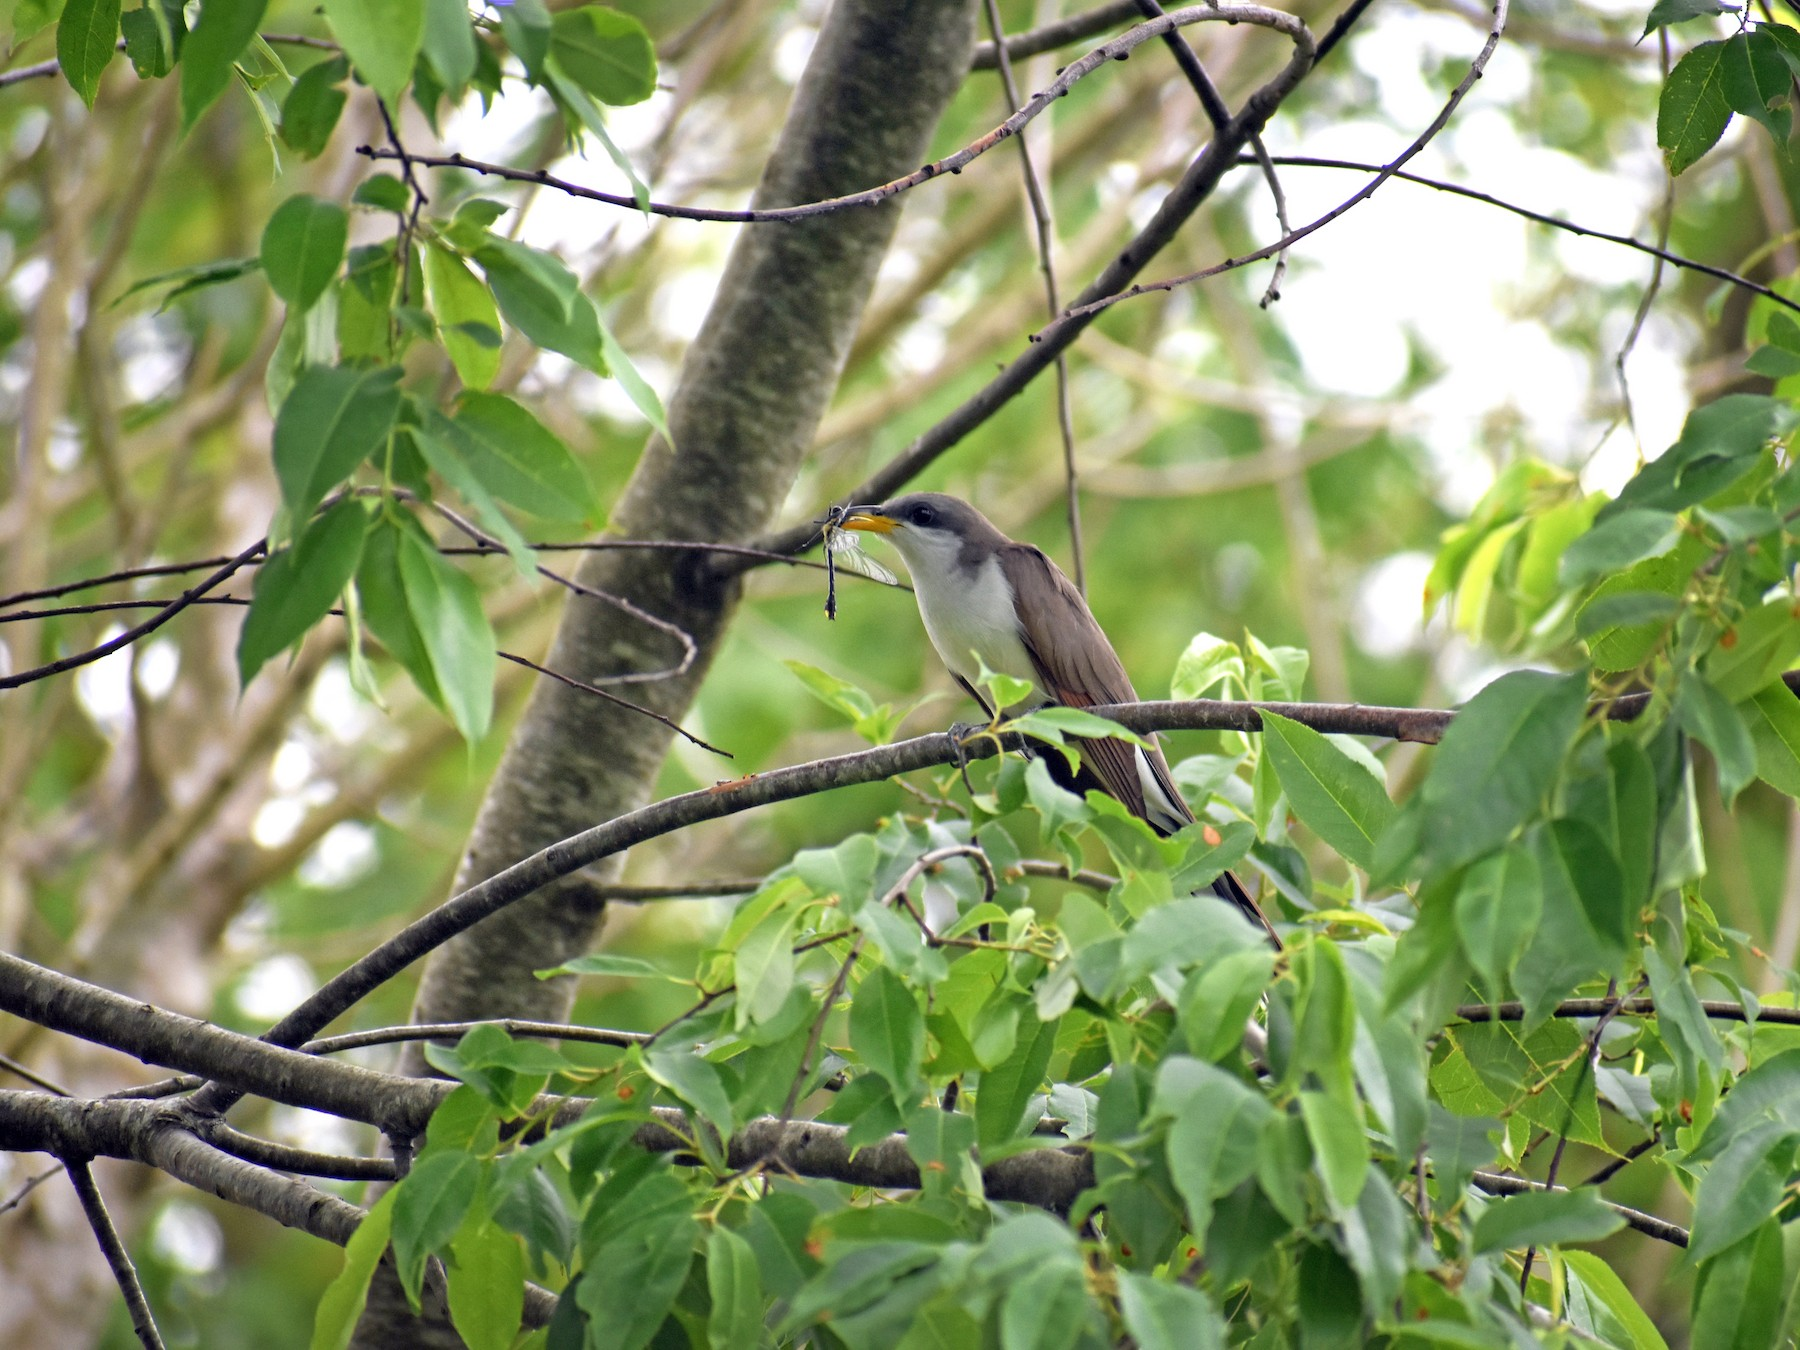 Yellow-billed Cuckoo - Luke Thompson